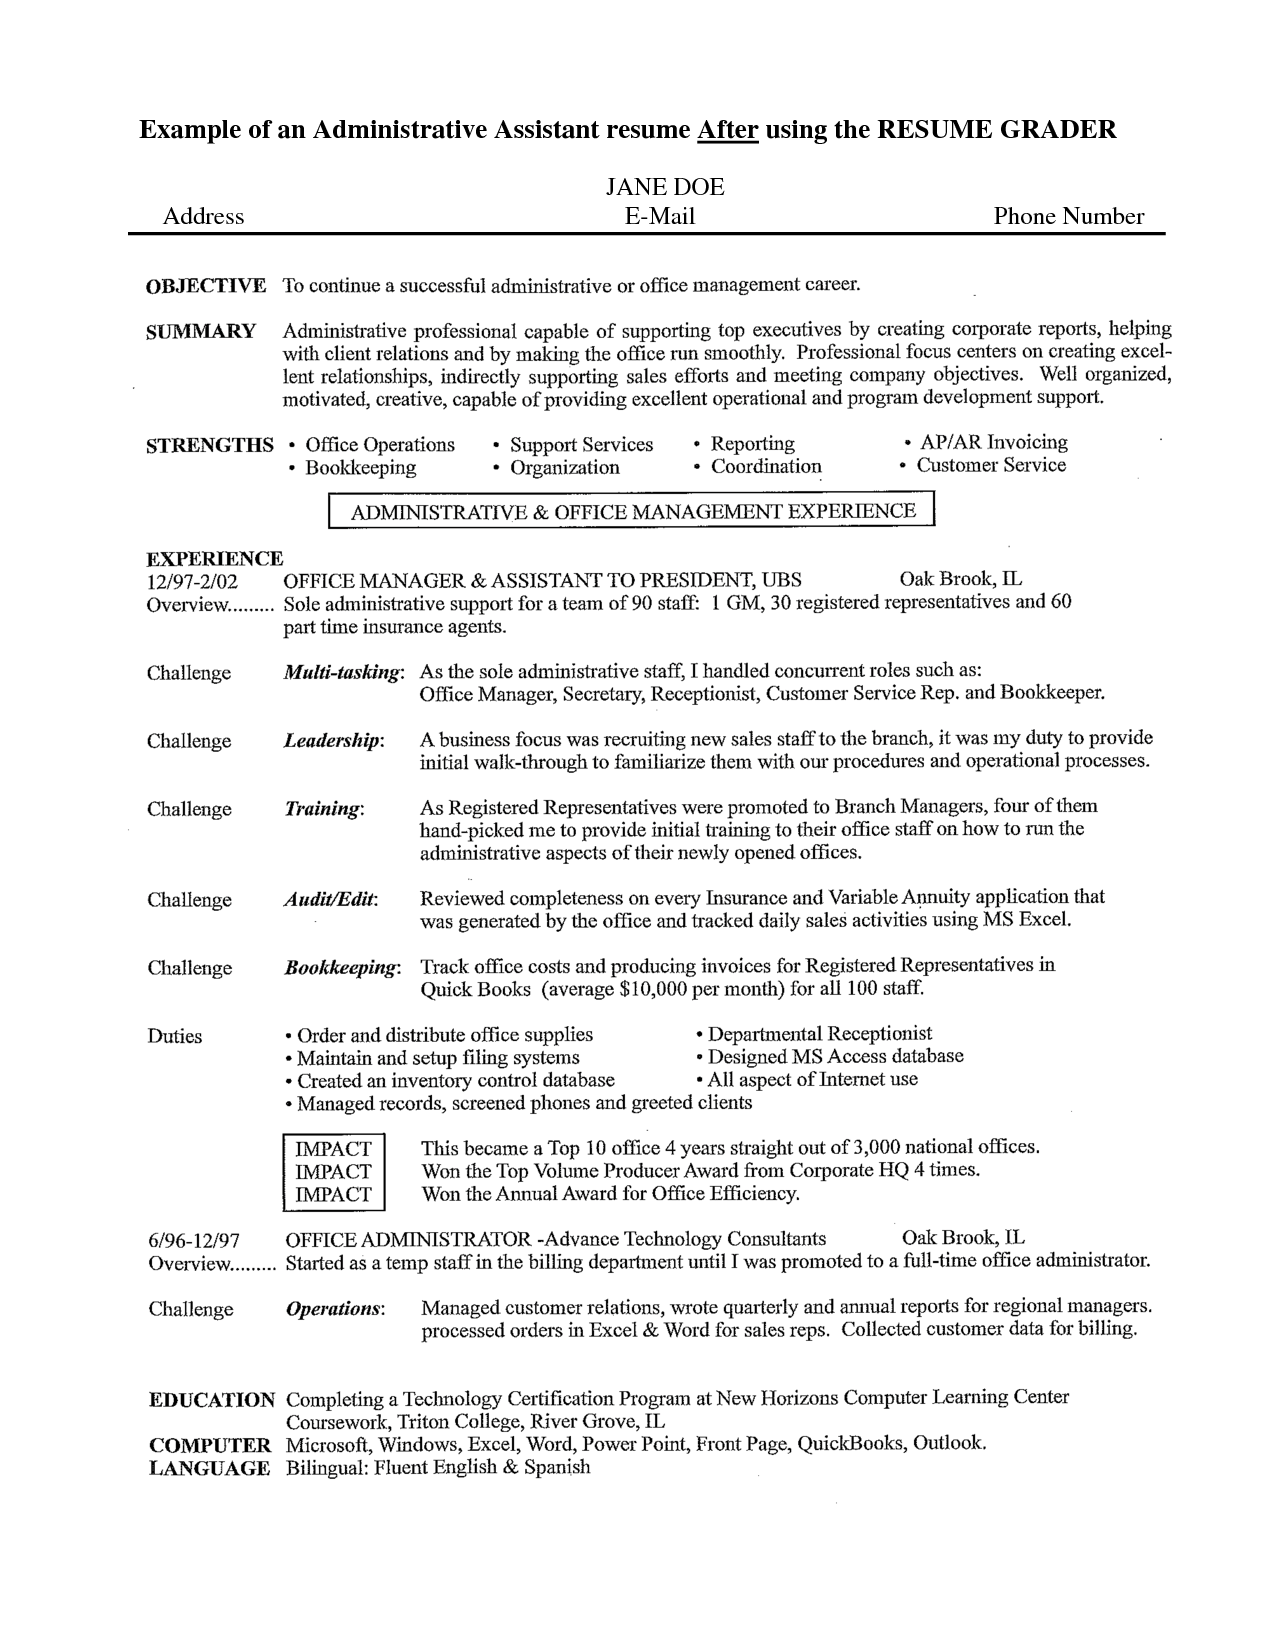 Killer Resume Objectives Best Ideas About Career Sales Advertising